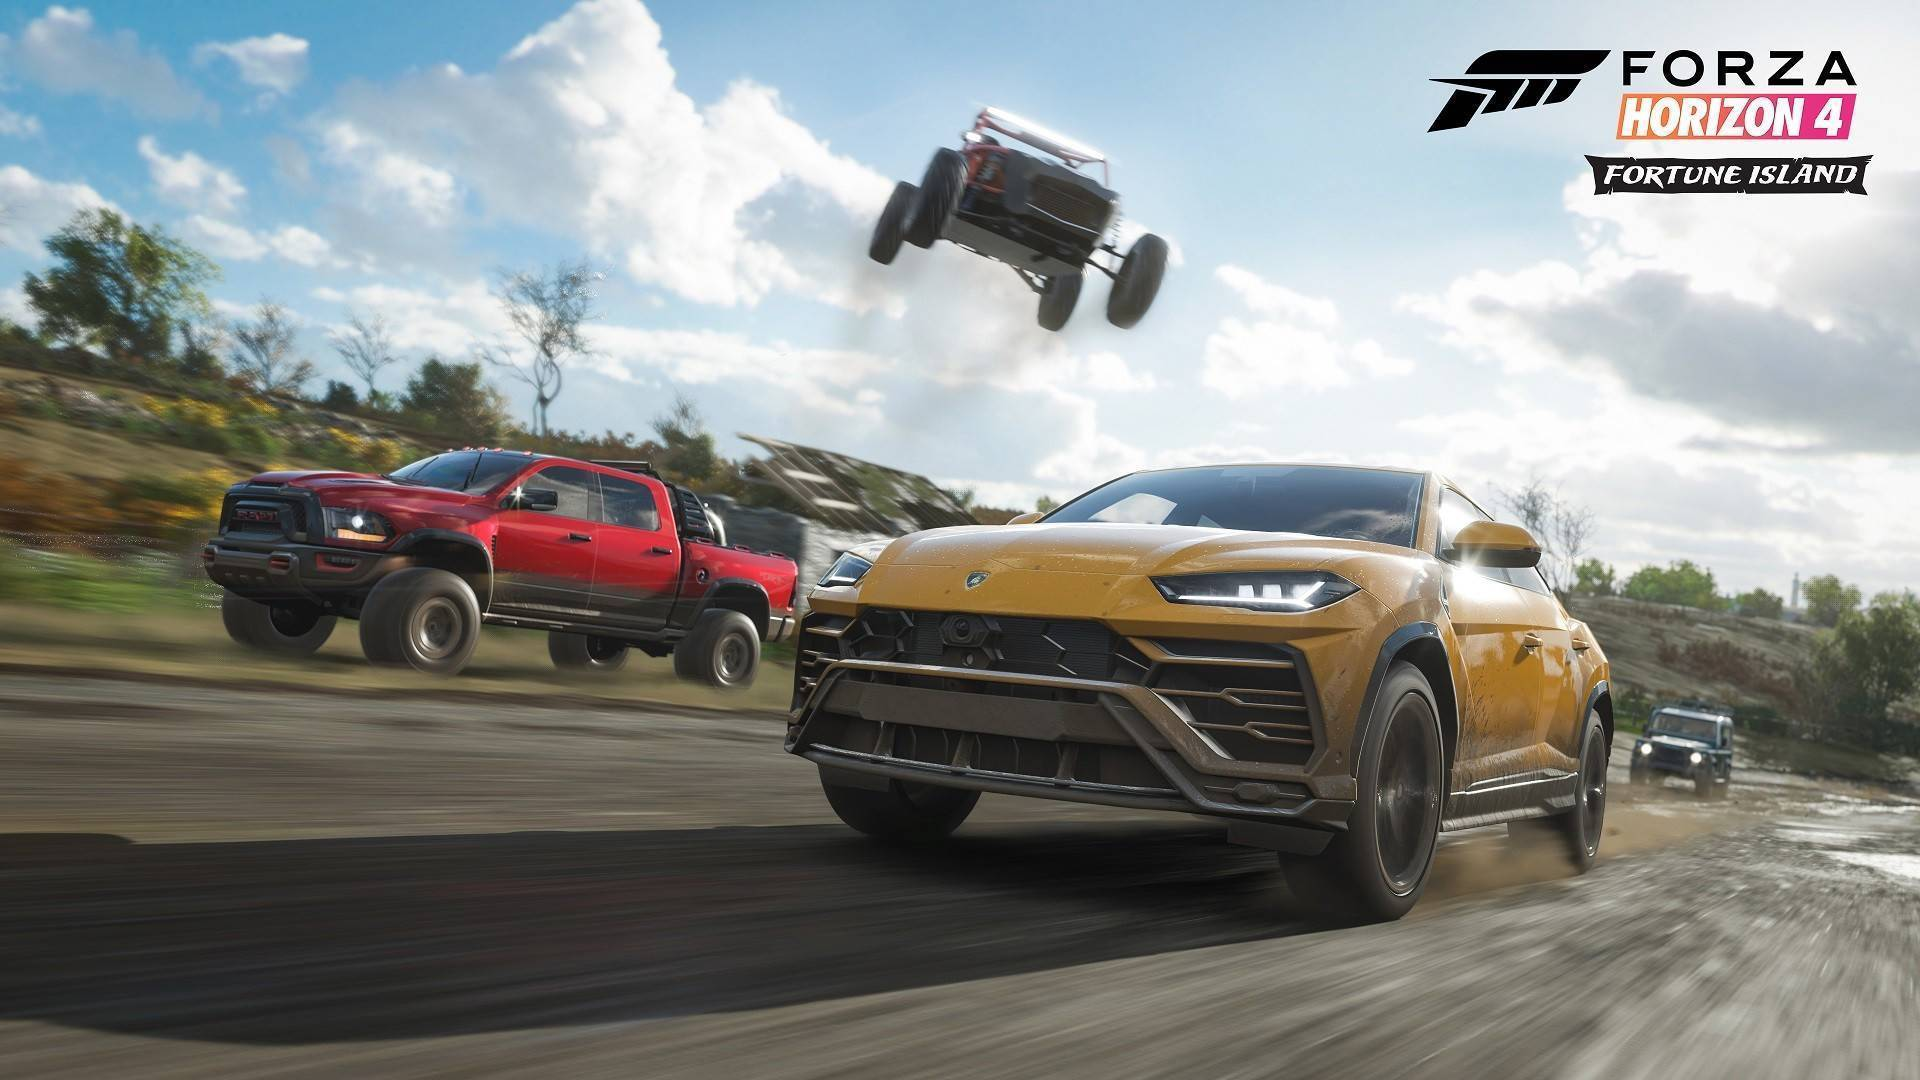 buy forza horizon 4 fortune island pc cd key compare prices. Black Bedroom Furniture Sets. Home Design Ideas